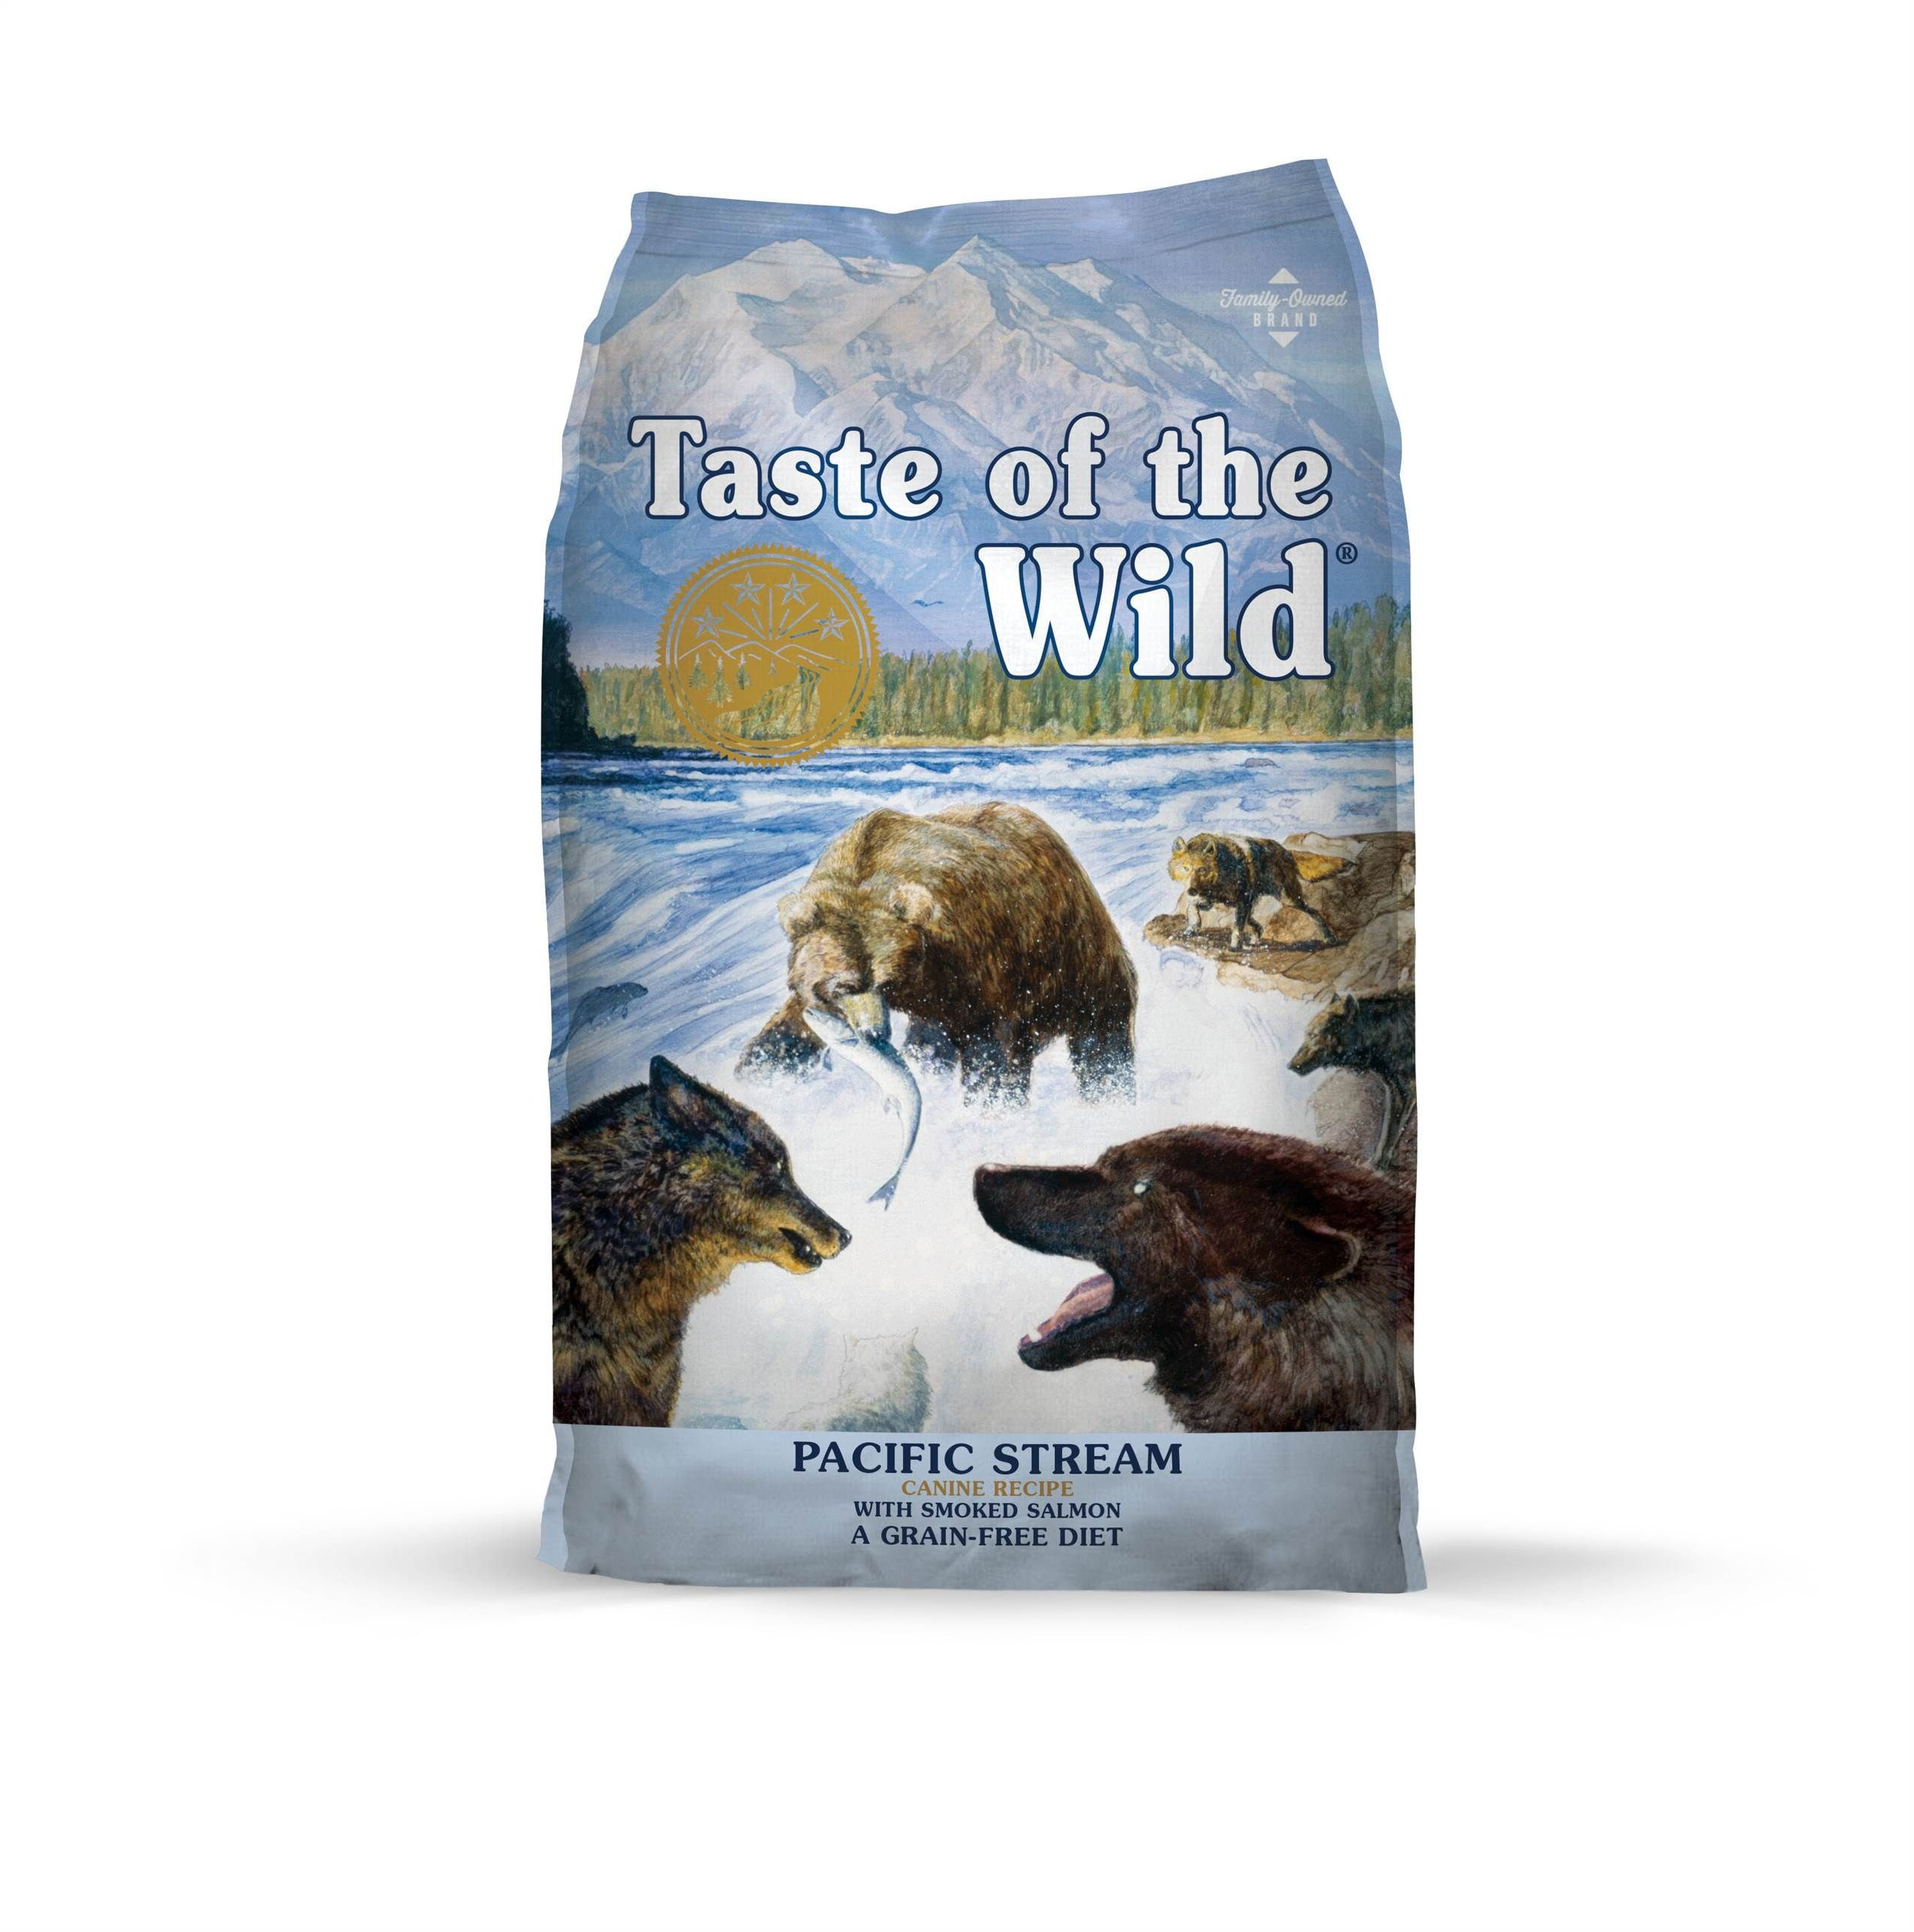 Taste of the Wild Pacific Stream with Smoked Salmon Formula Dry Dog Food 5lbs-28lbs 00015